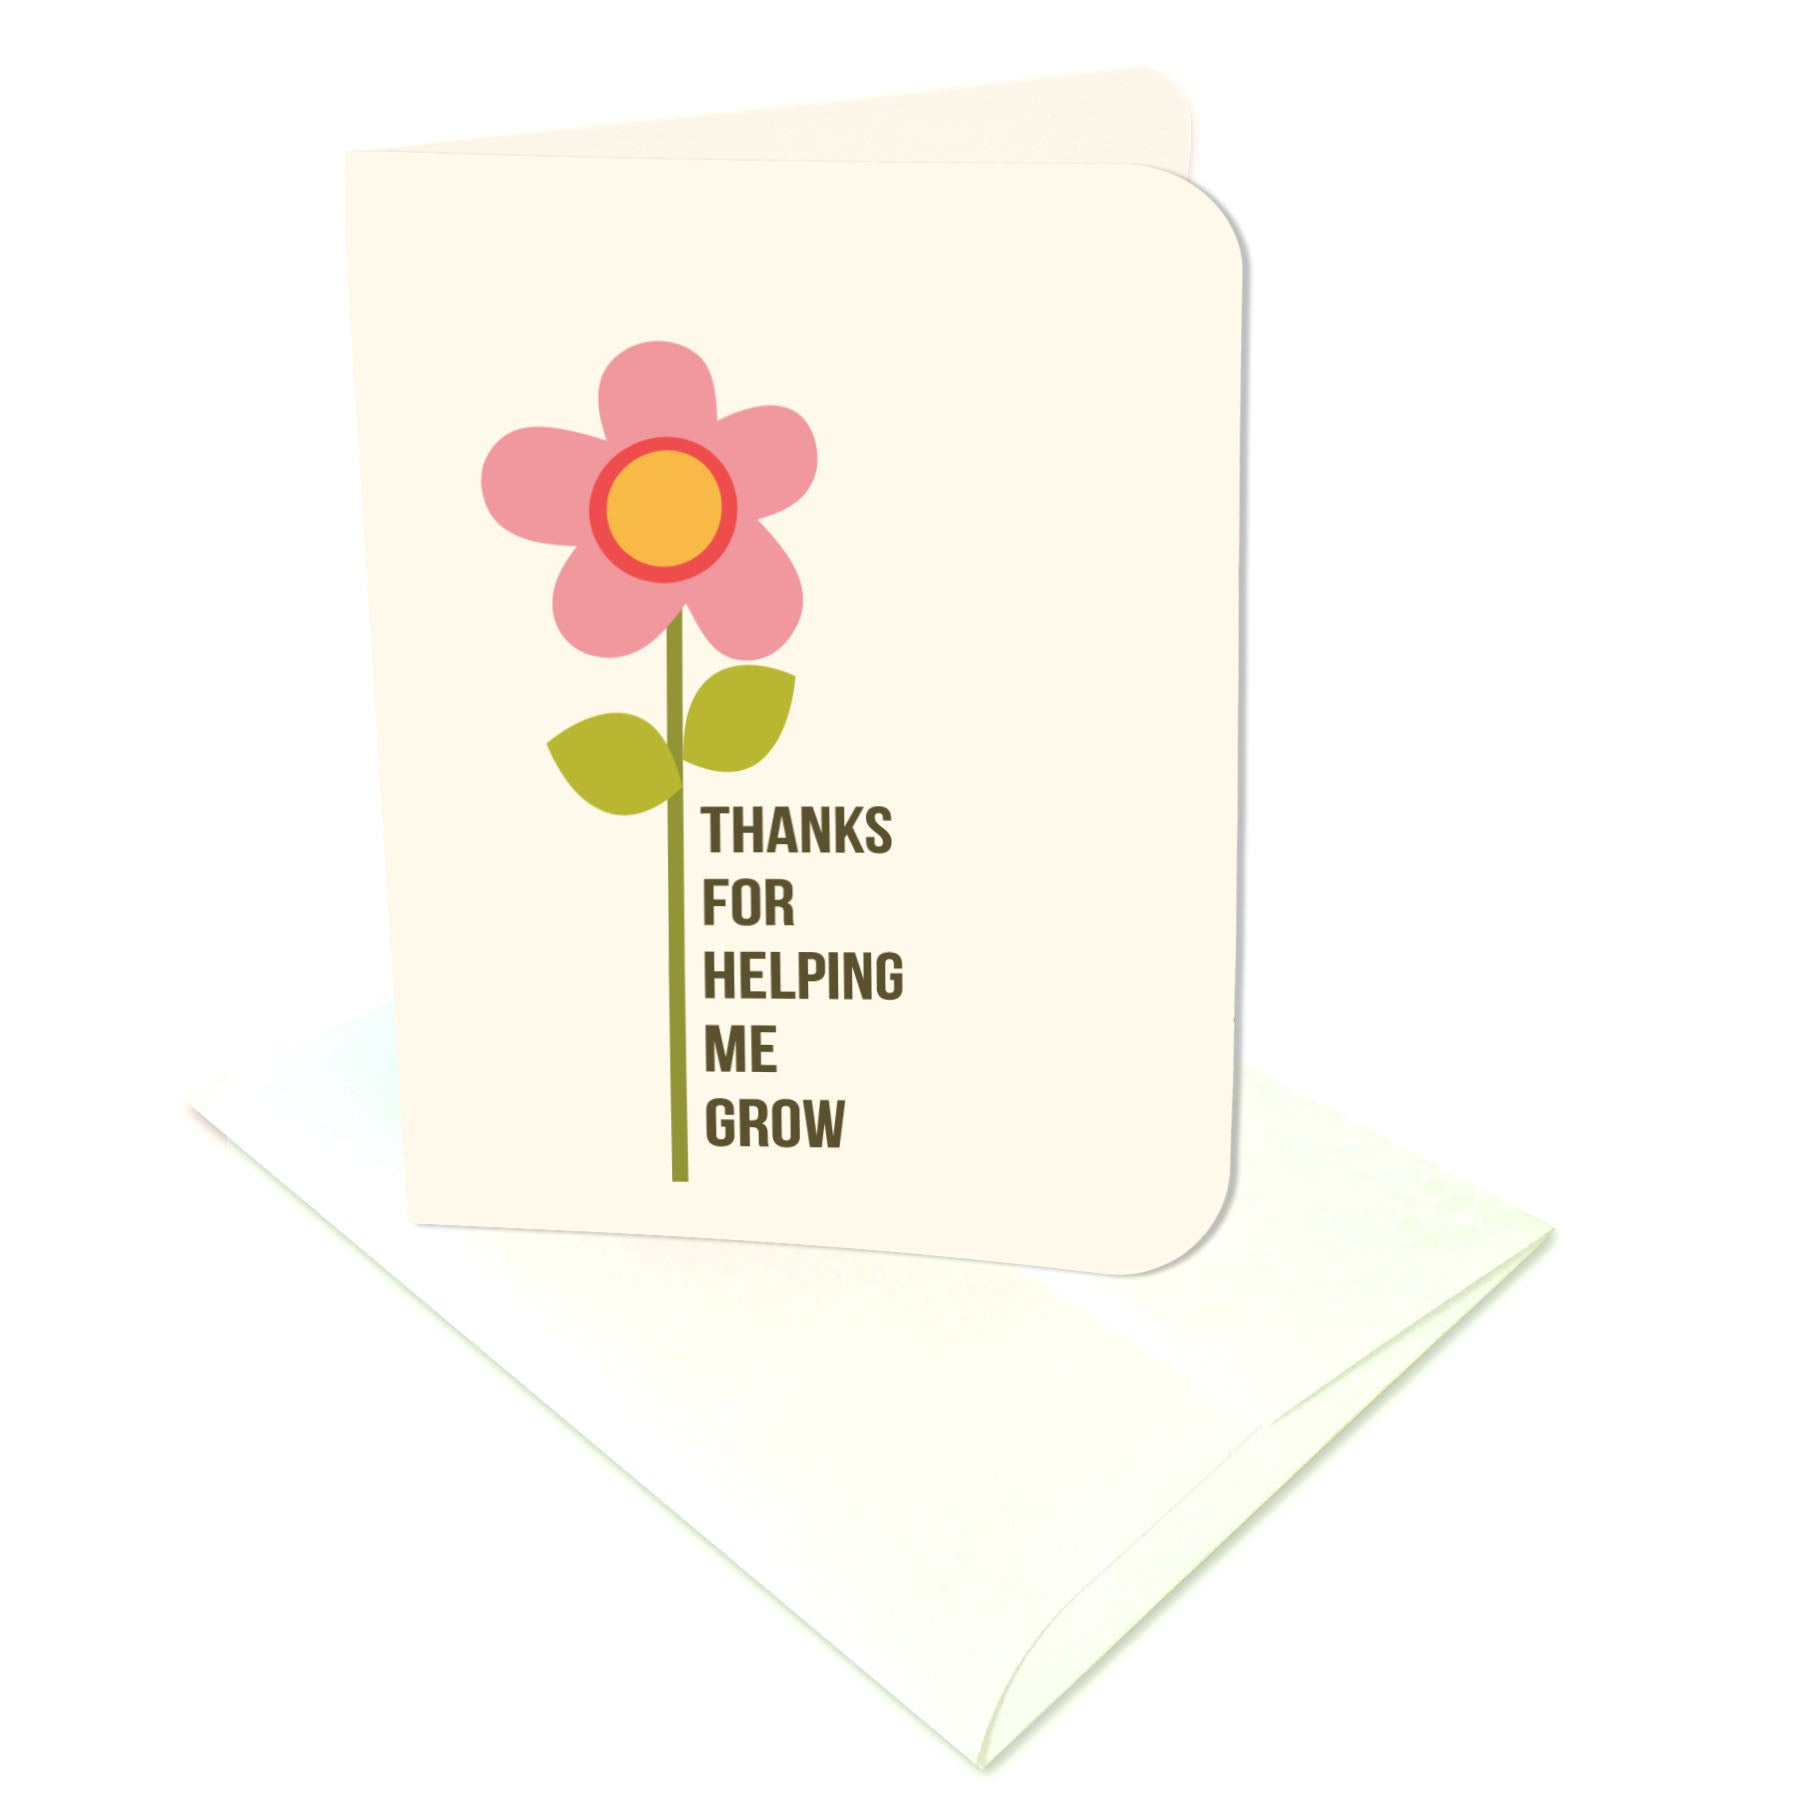 thanks for helping me grow prints card digital download print cut